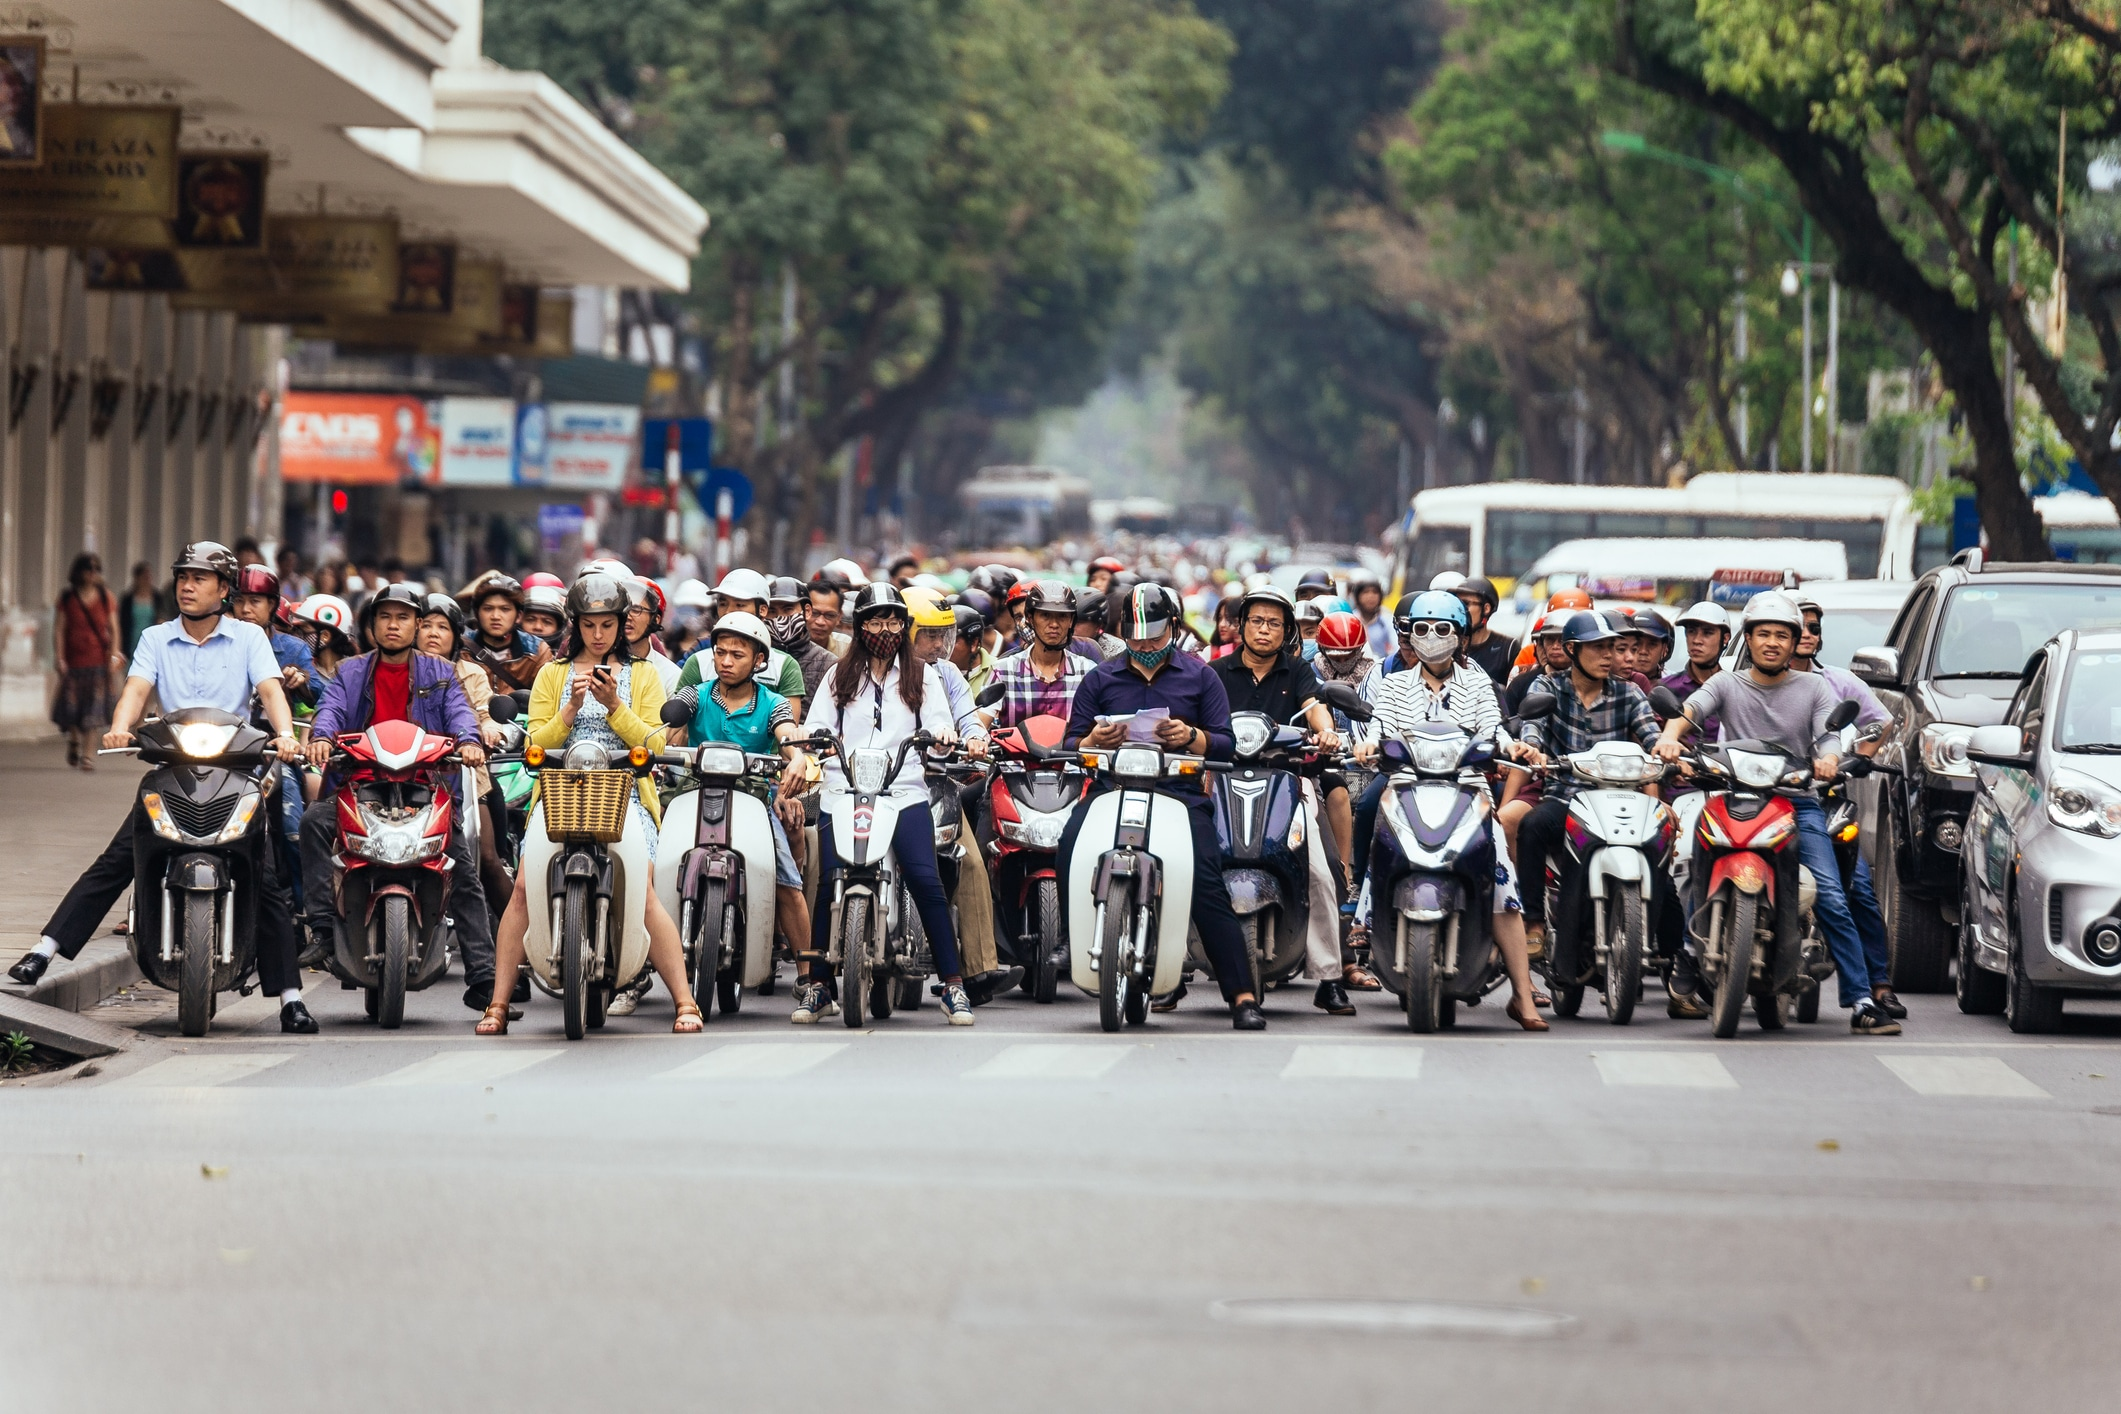 Motorcycles got traffic jam on the road with green trees in background at Hanoi, Vietnam.